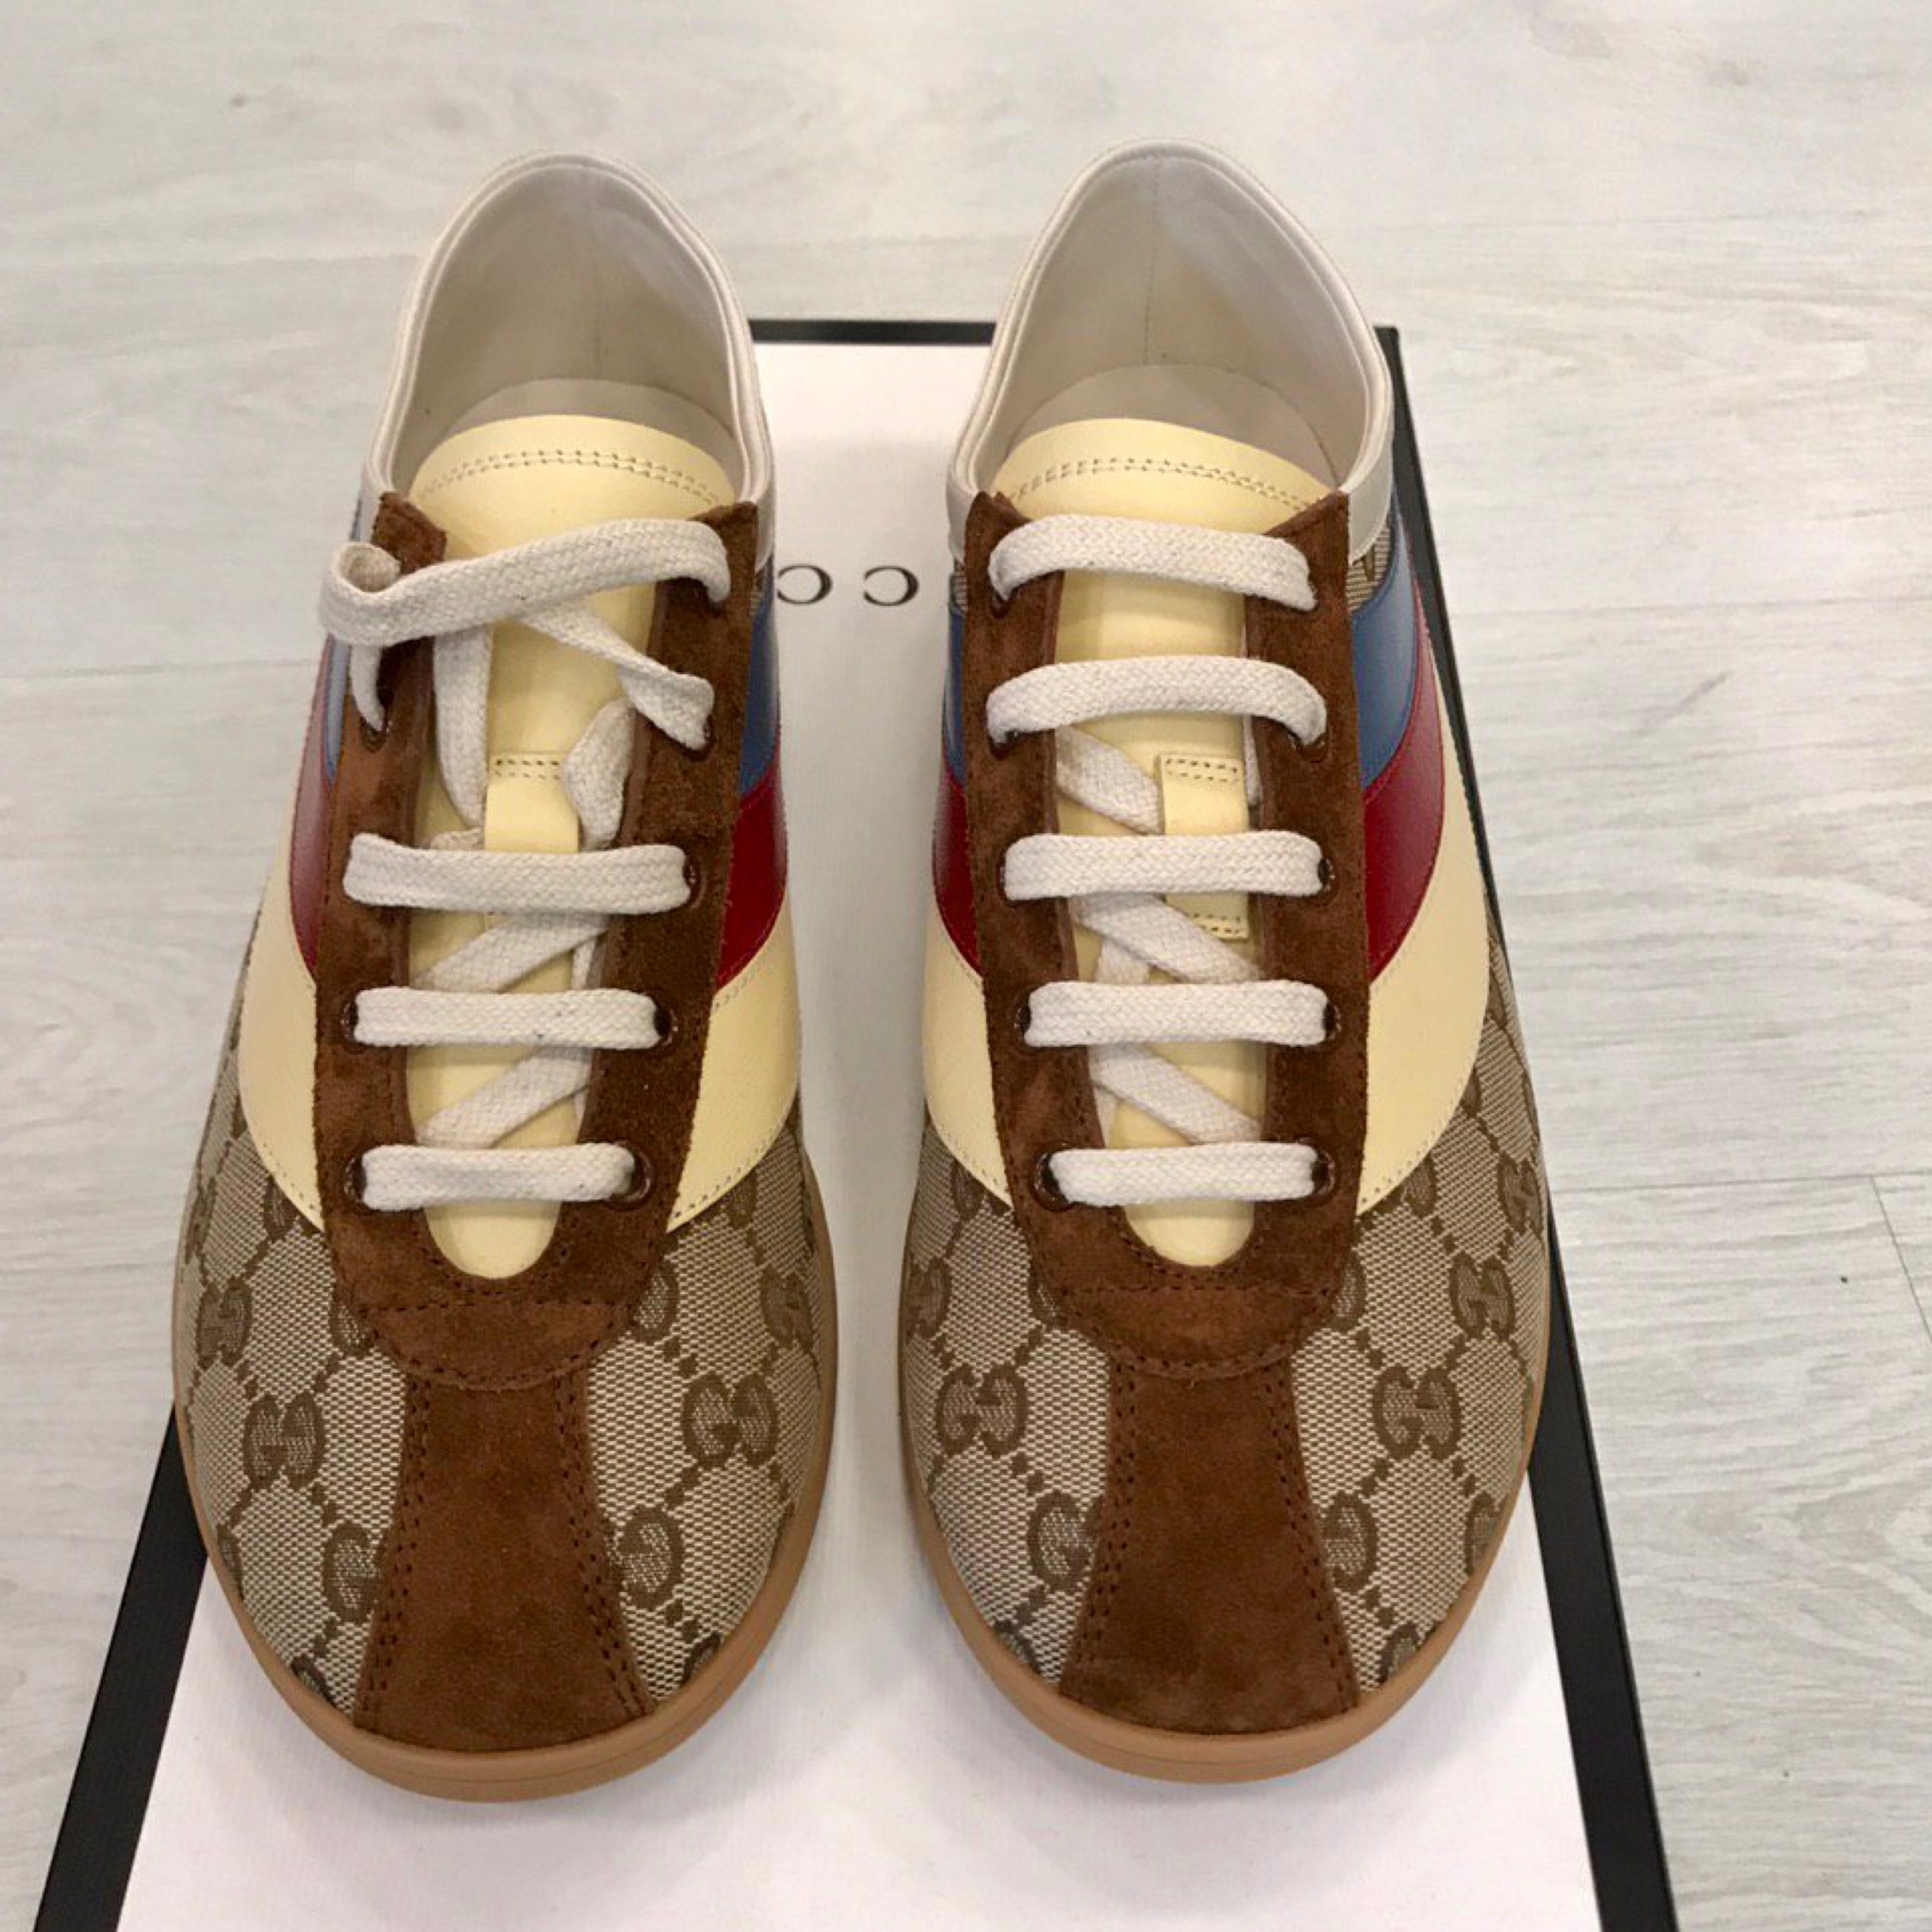 675d33eb6 Gucci Gucci Men's Falacer Gg Sneakers. US 7.5